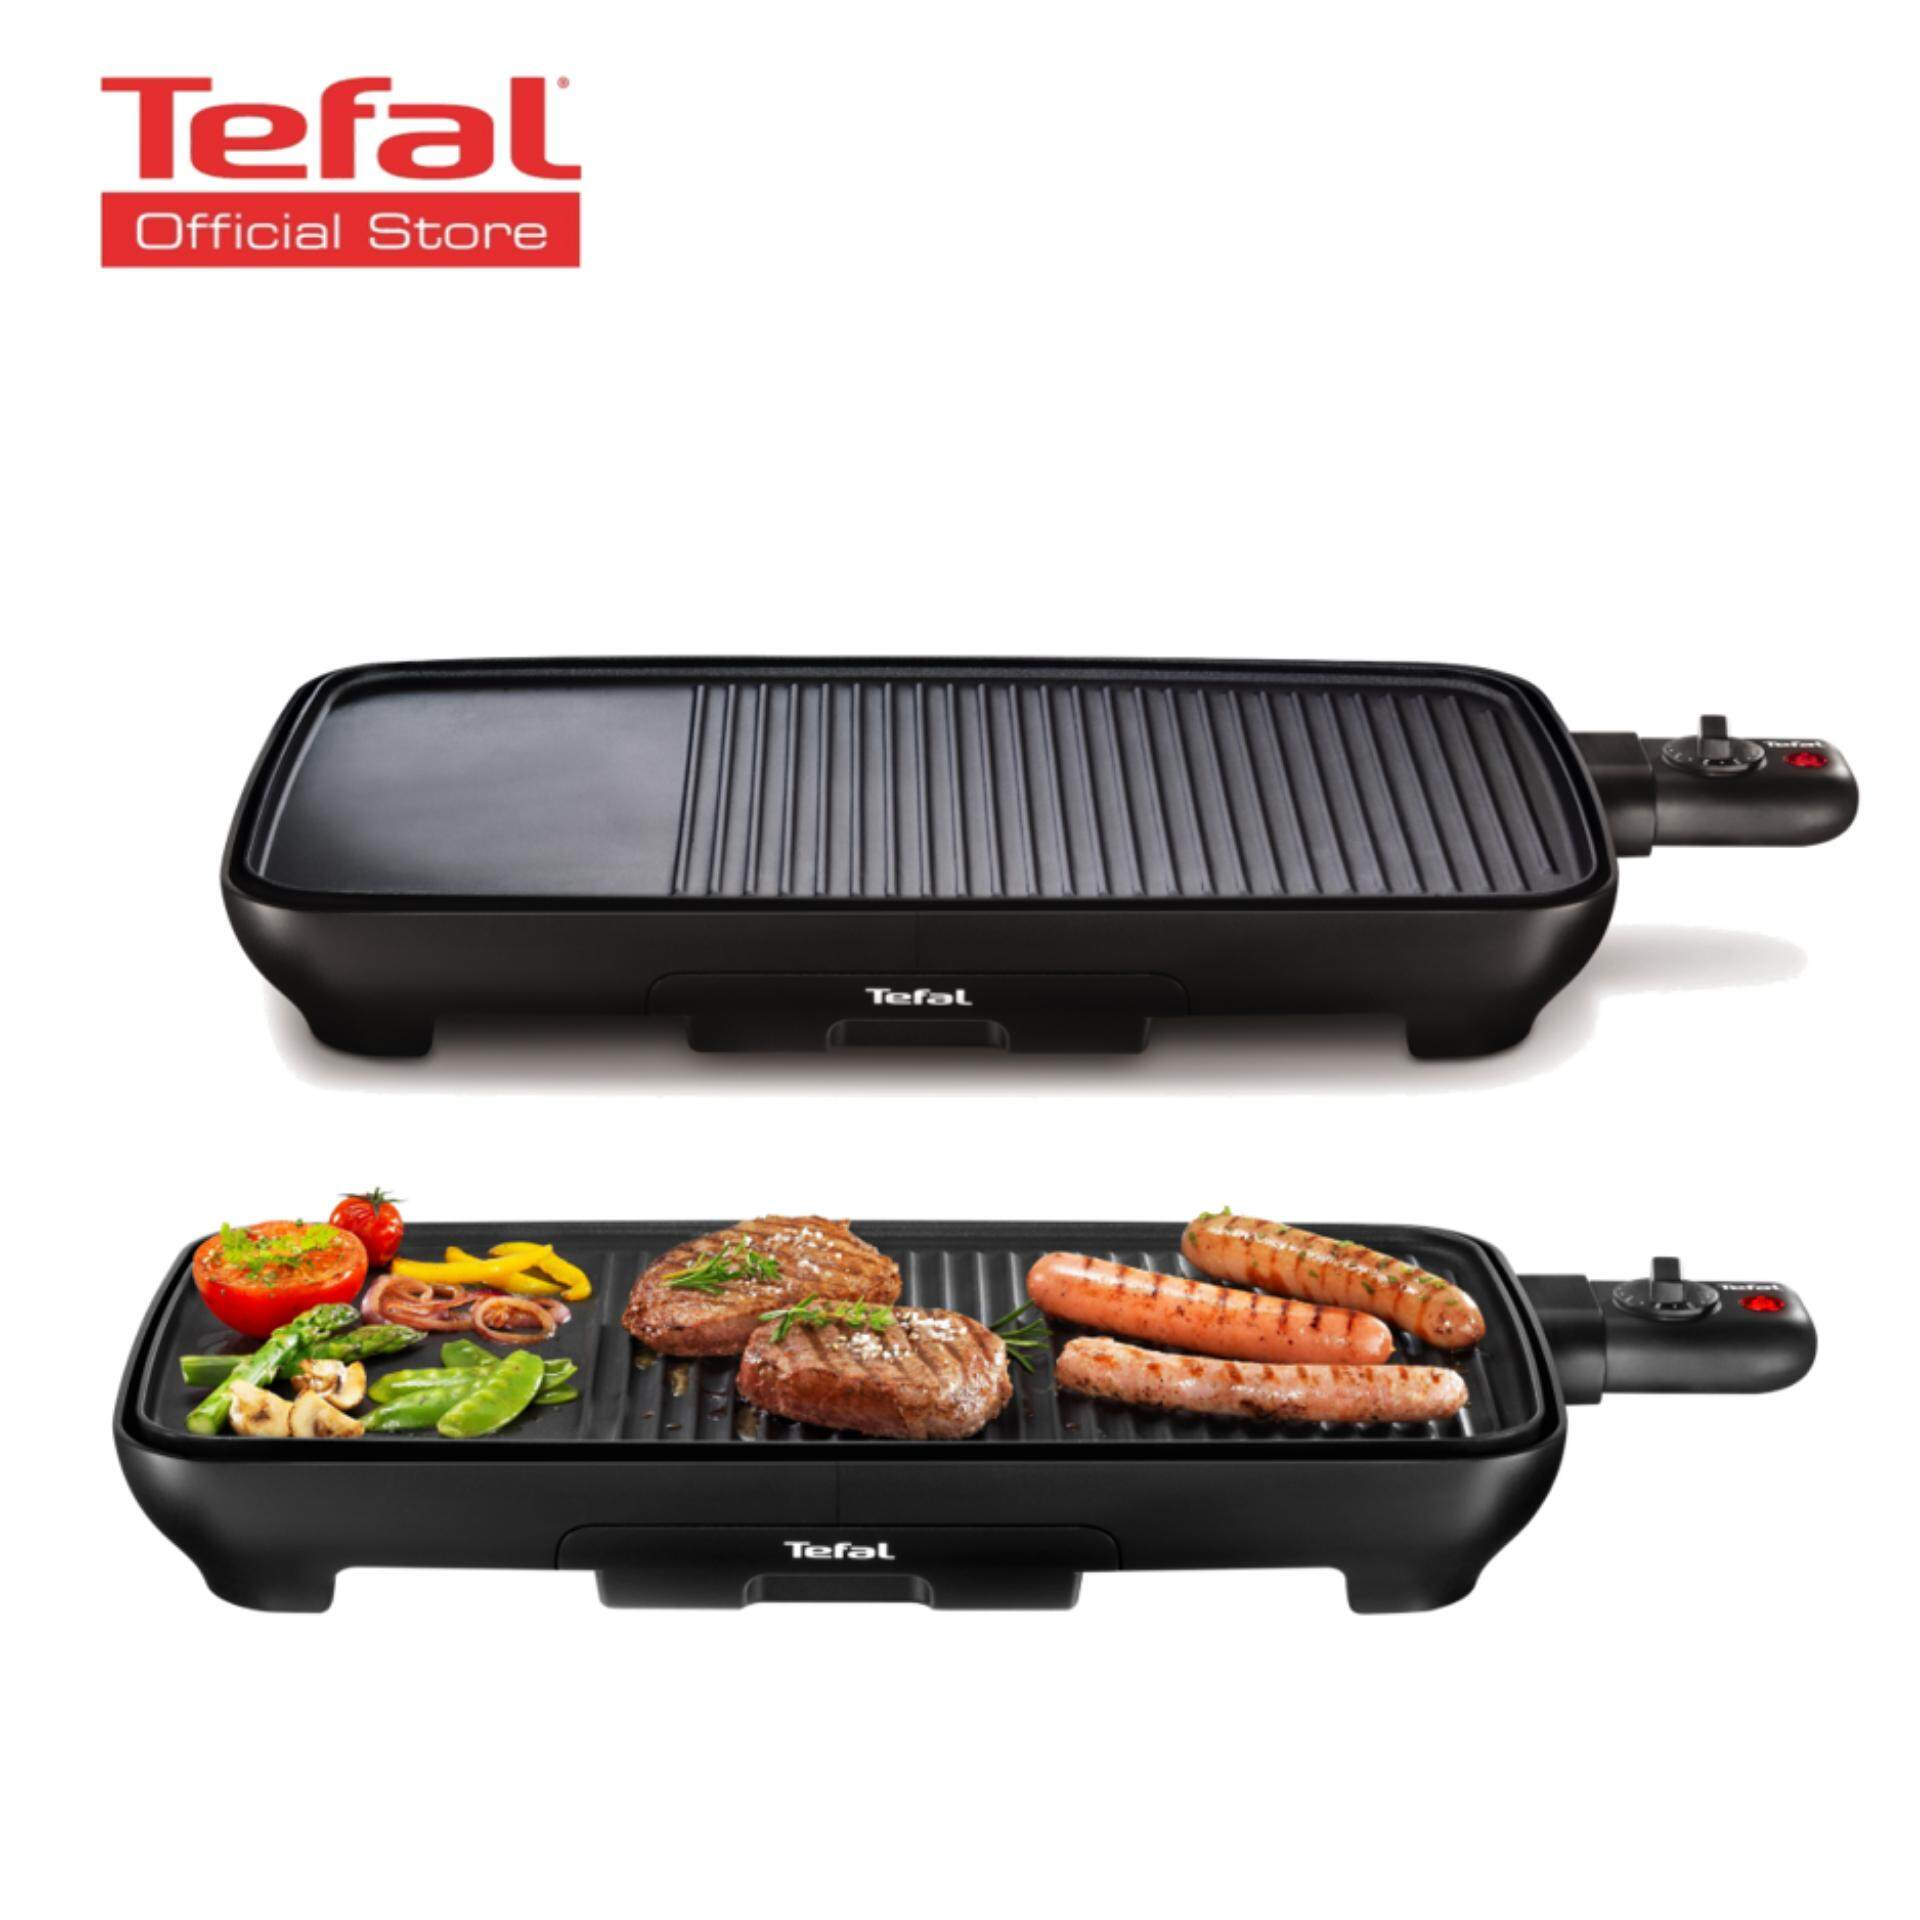 Tefal Plancha Malaga Successor Table Top Barbeque Grill (tg3918) By Tefal Official Store